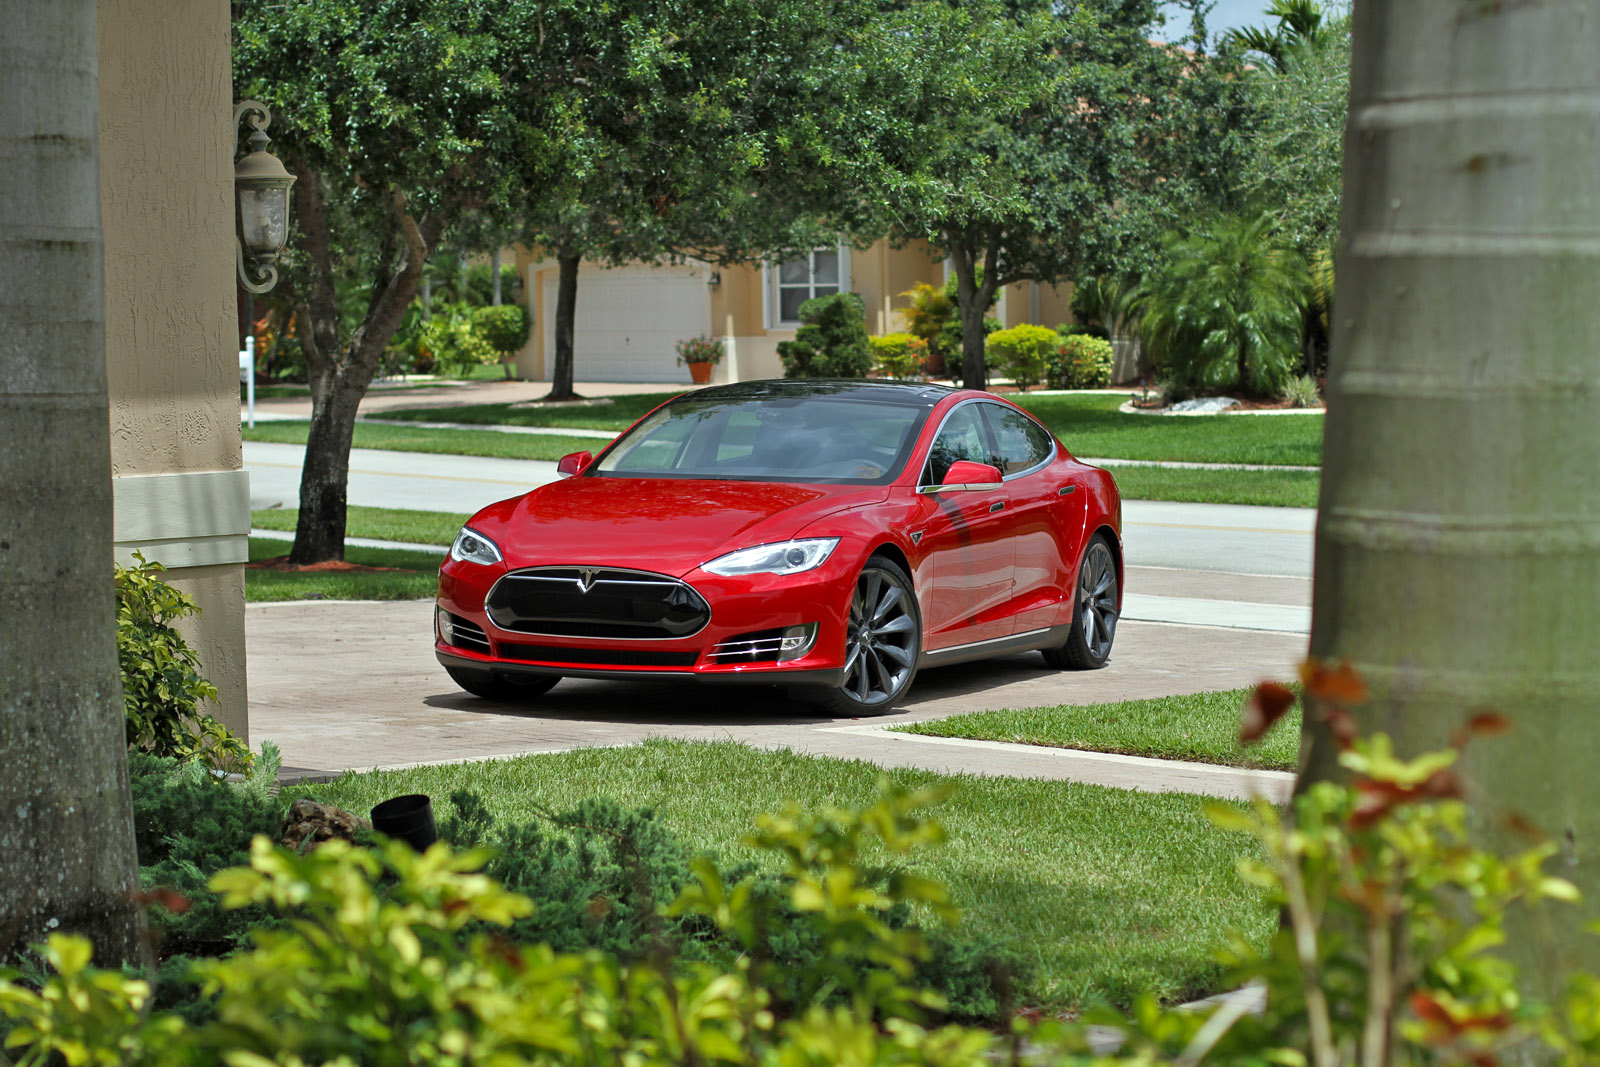 2013-tesla-model-s-p85-multi-coat-red-001.jpg